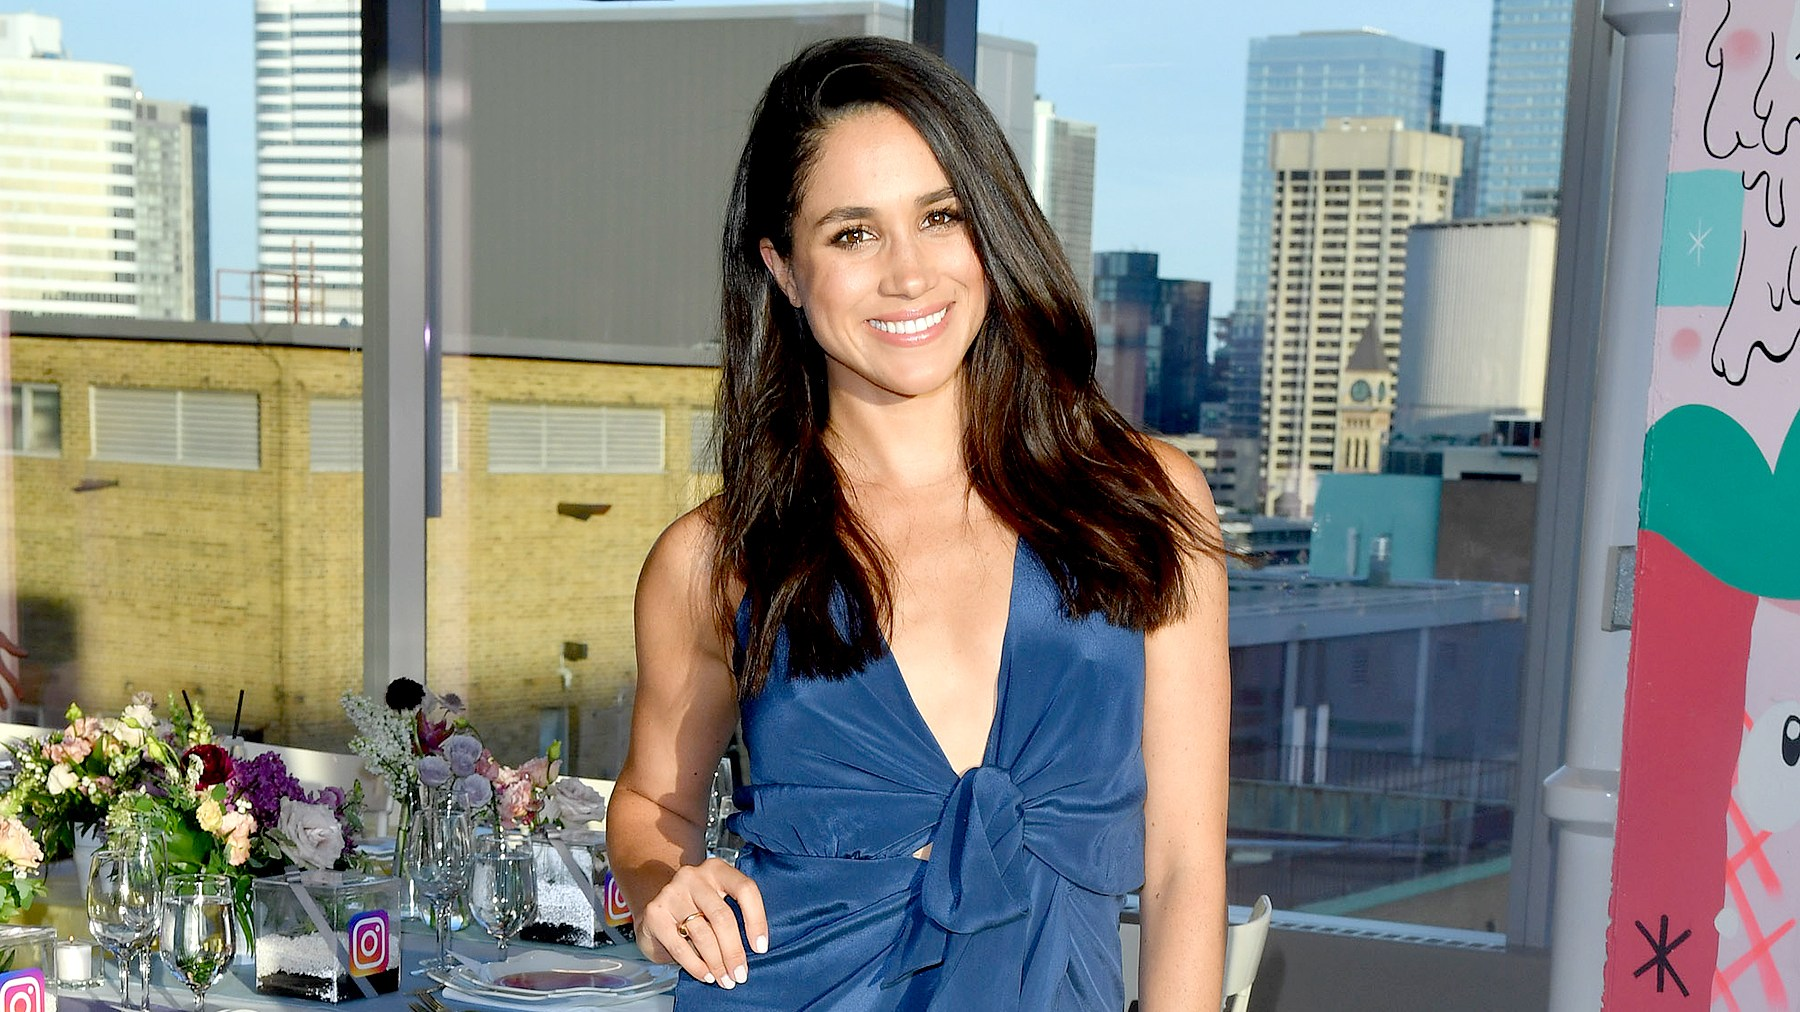 Meghan Markle attends the Instagram Dinner held at the MARS Discovery District on May 31, 2016 in Toronto, Canada.